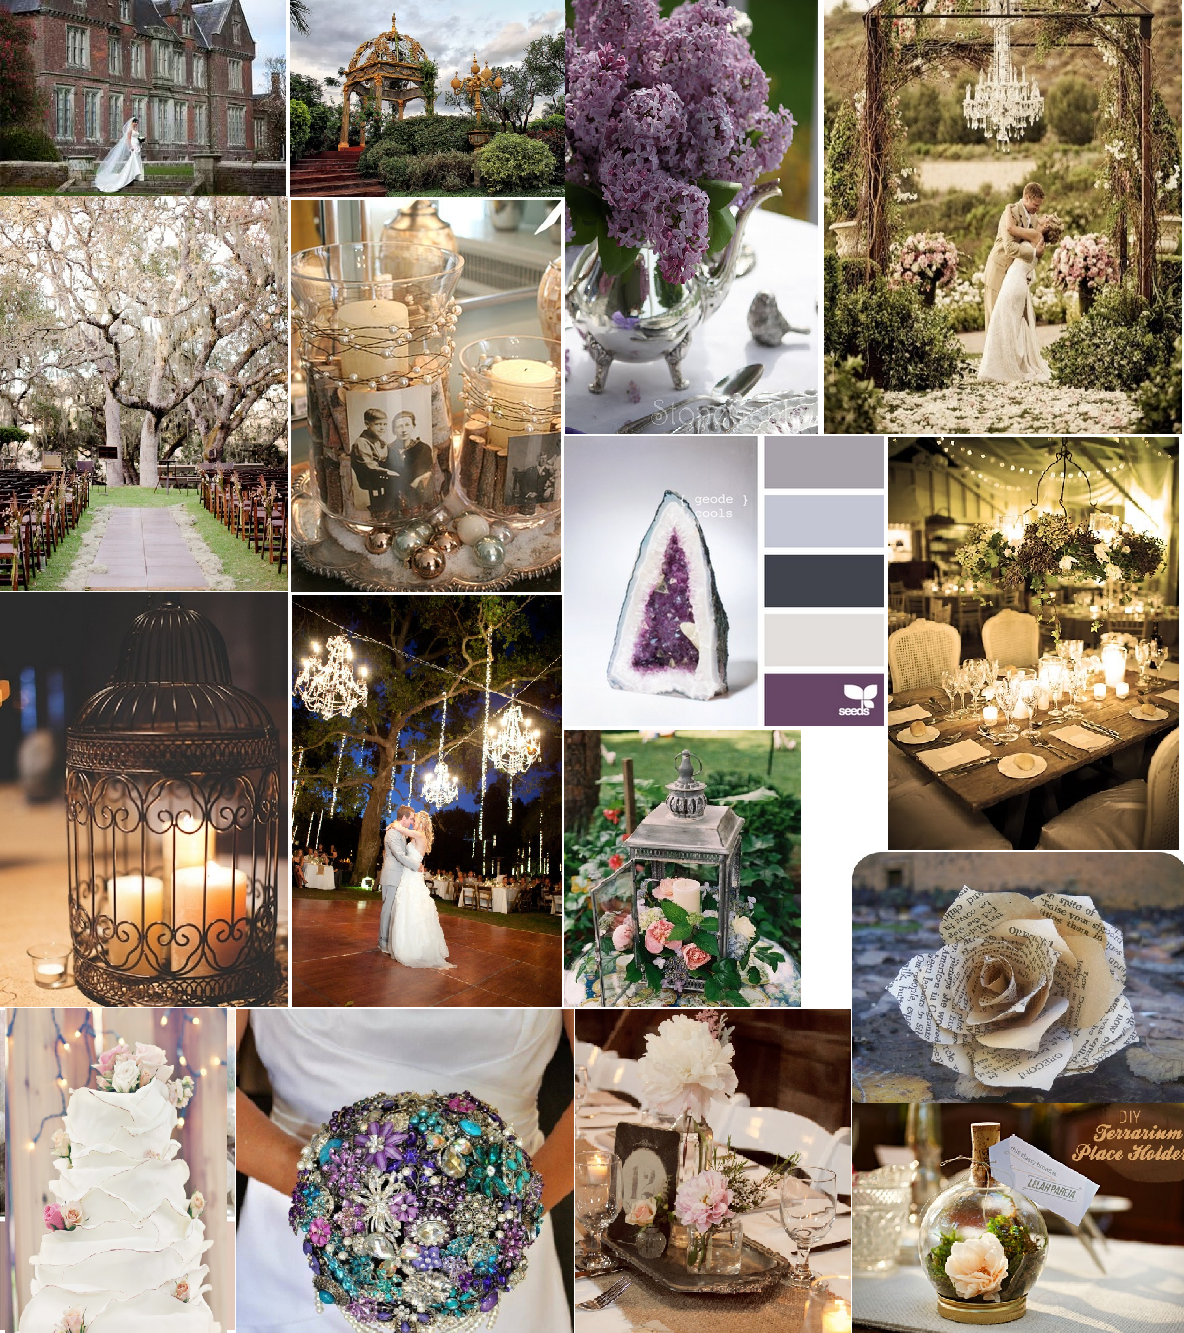 Wedding Board I Put Together Using Images From Pinterest Trying To